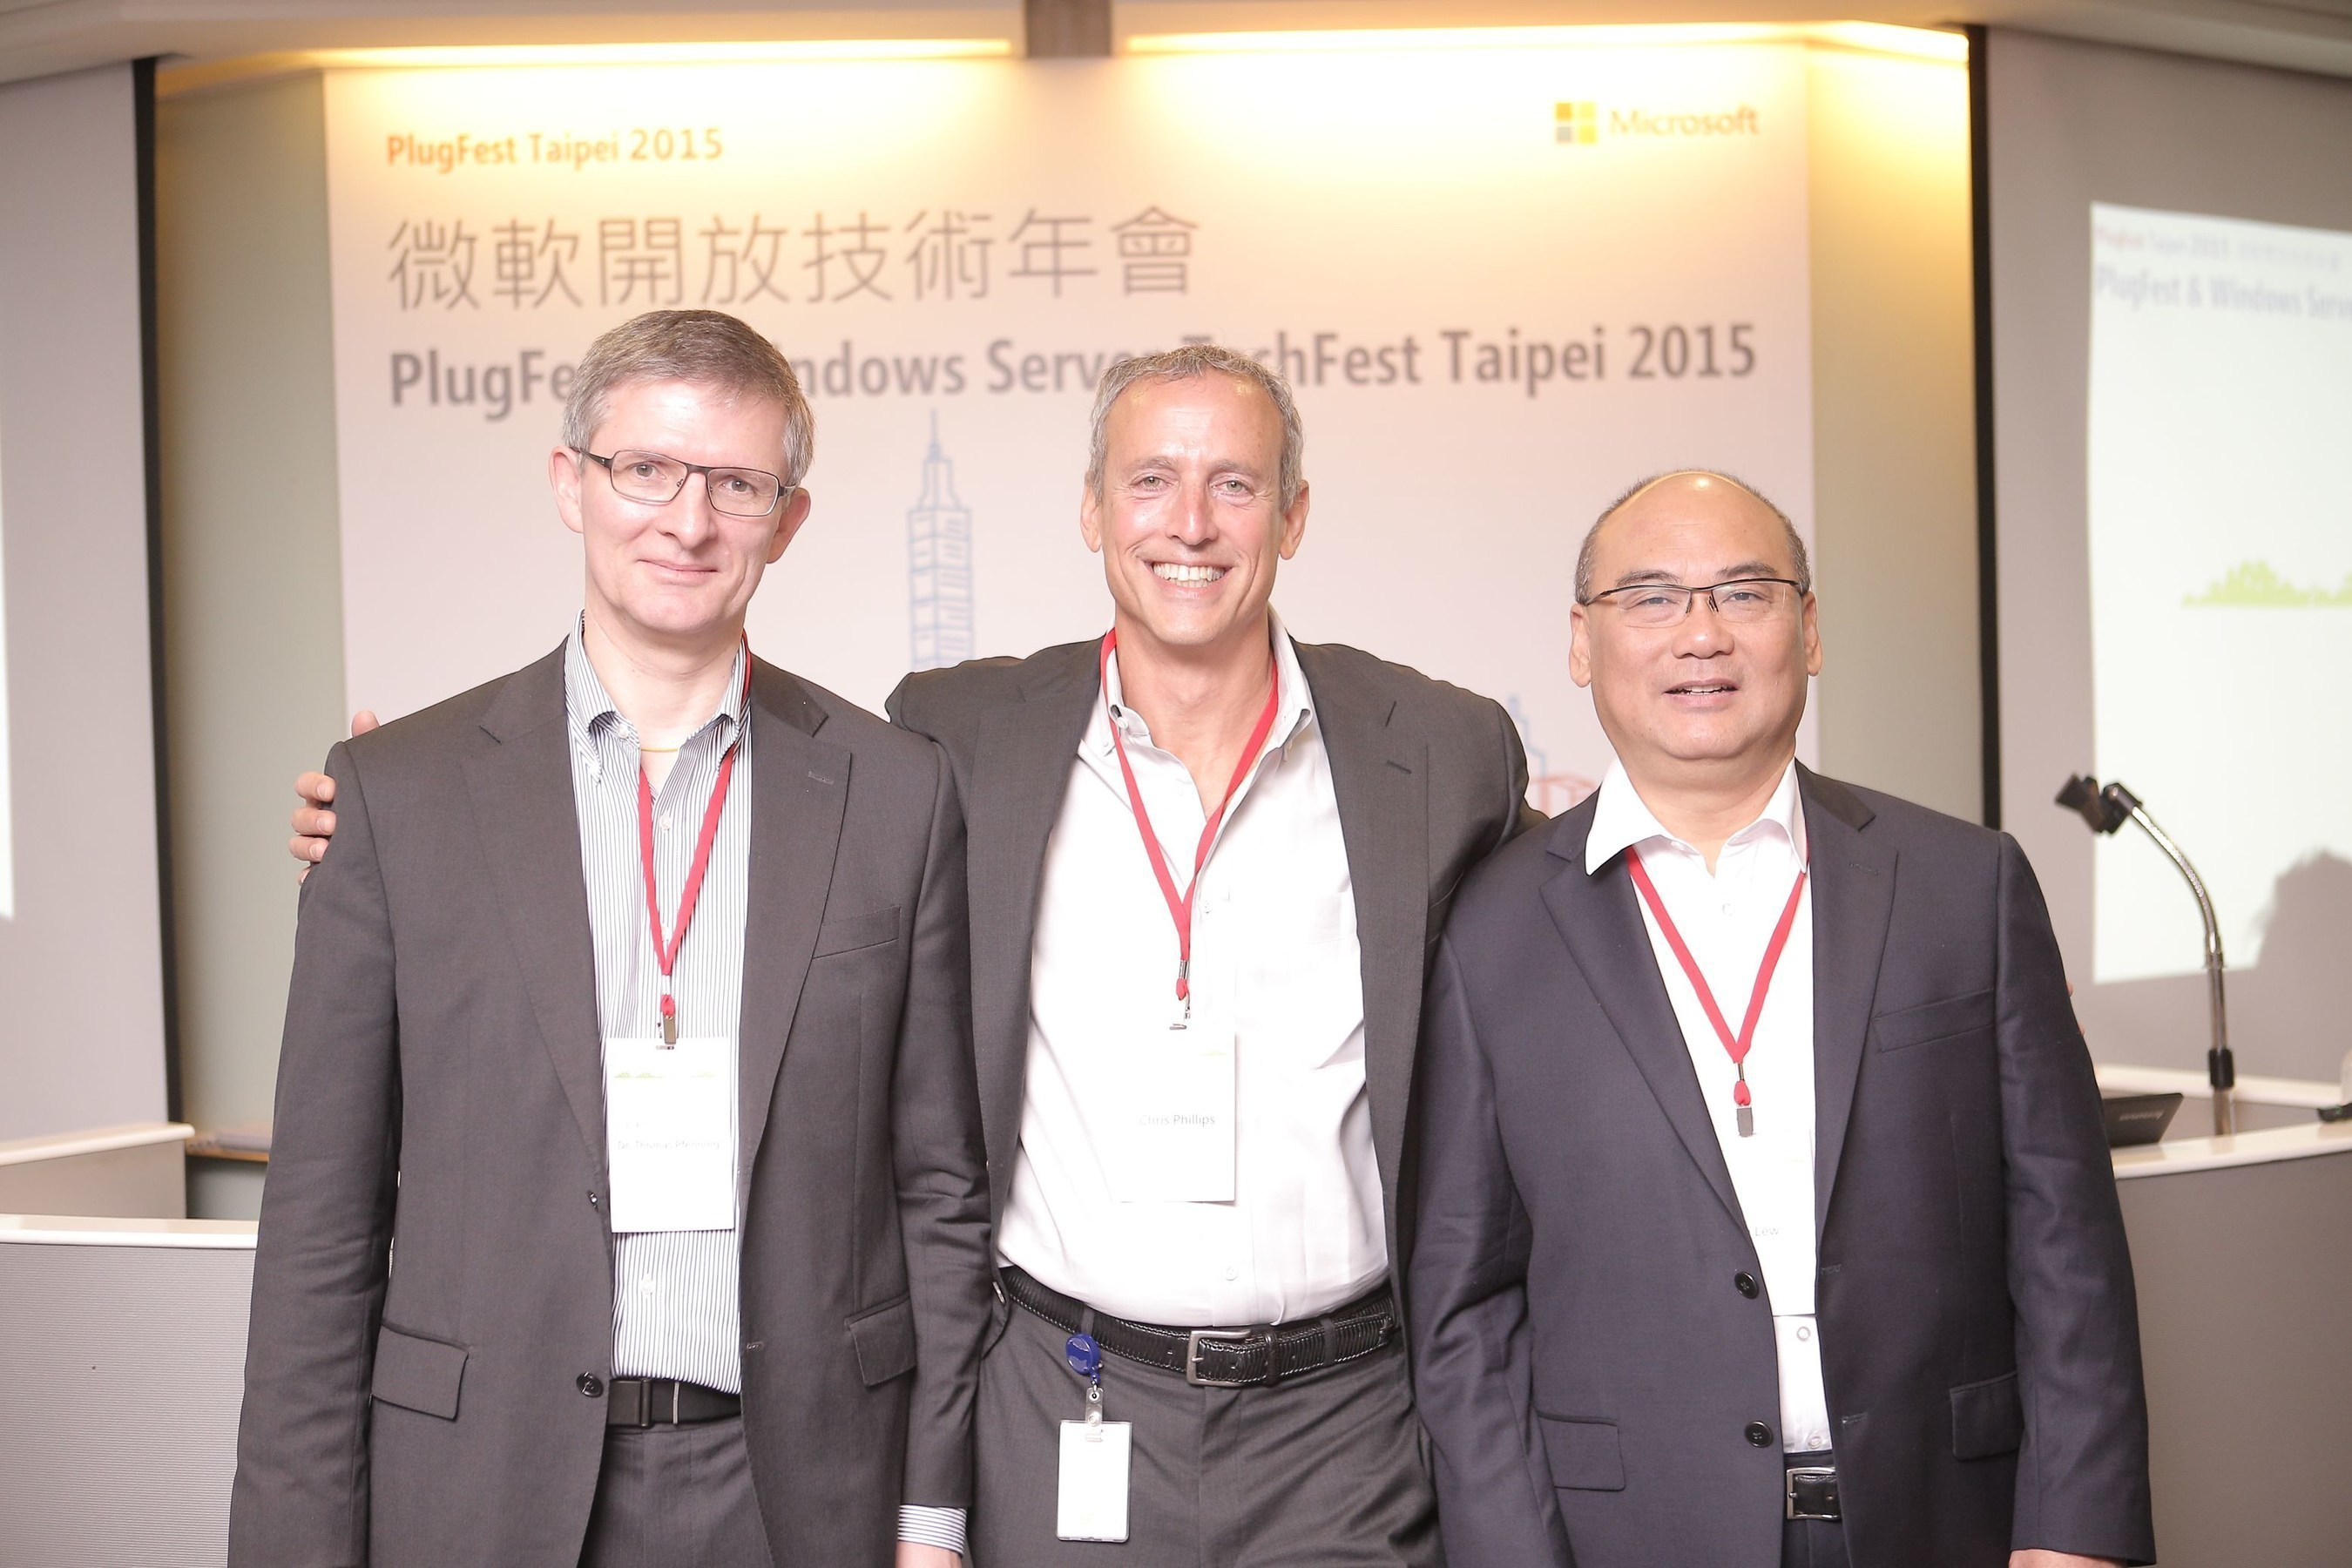 Microsoft PlugFest and Windows Server TechFest Taipei 2015 Now Open